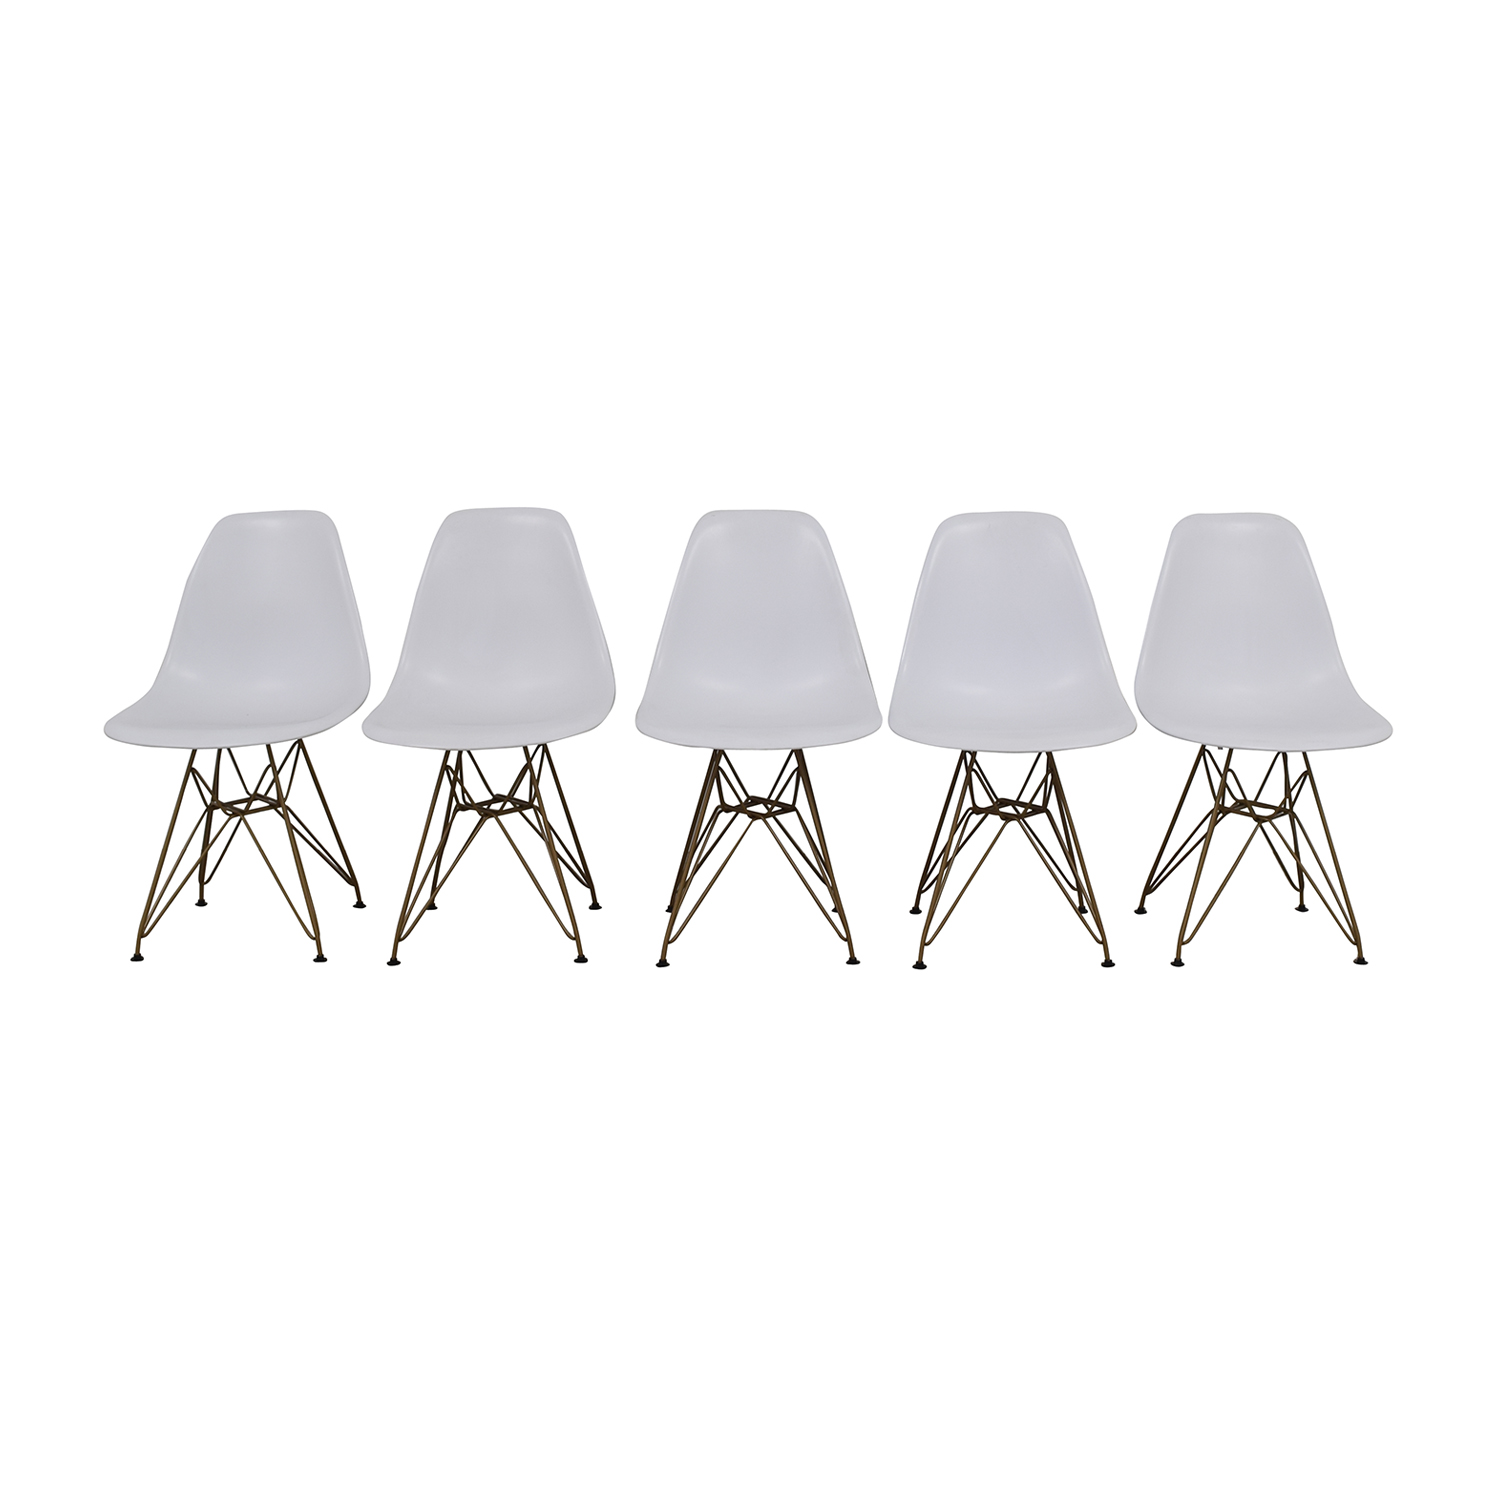 Junia Junia White Side Chairs price